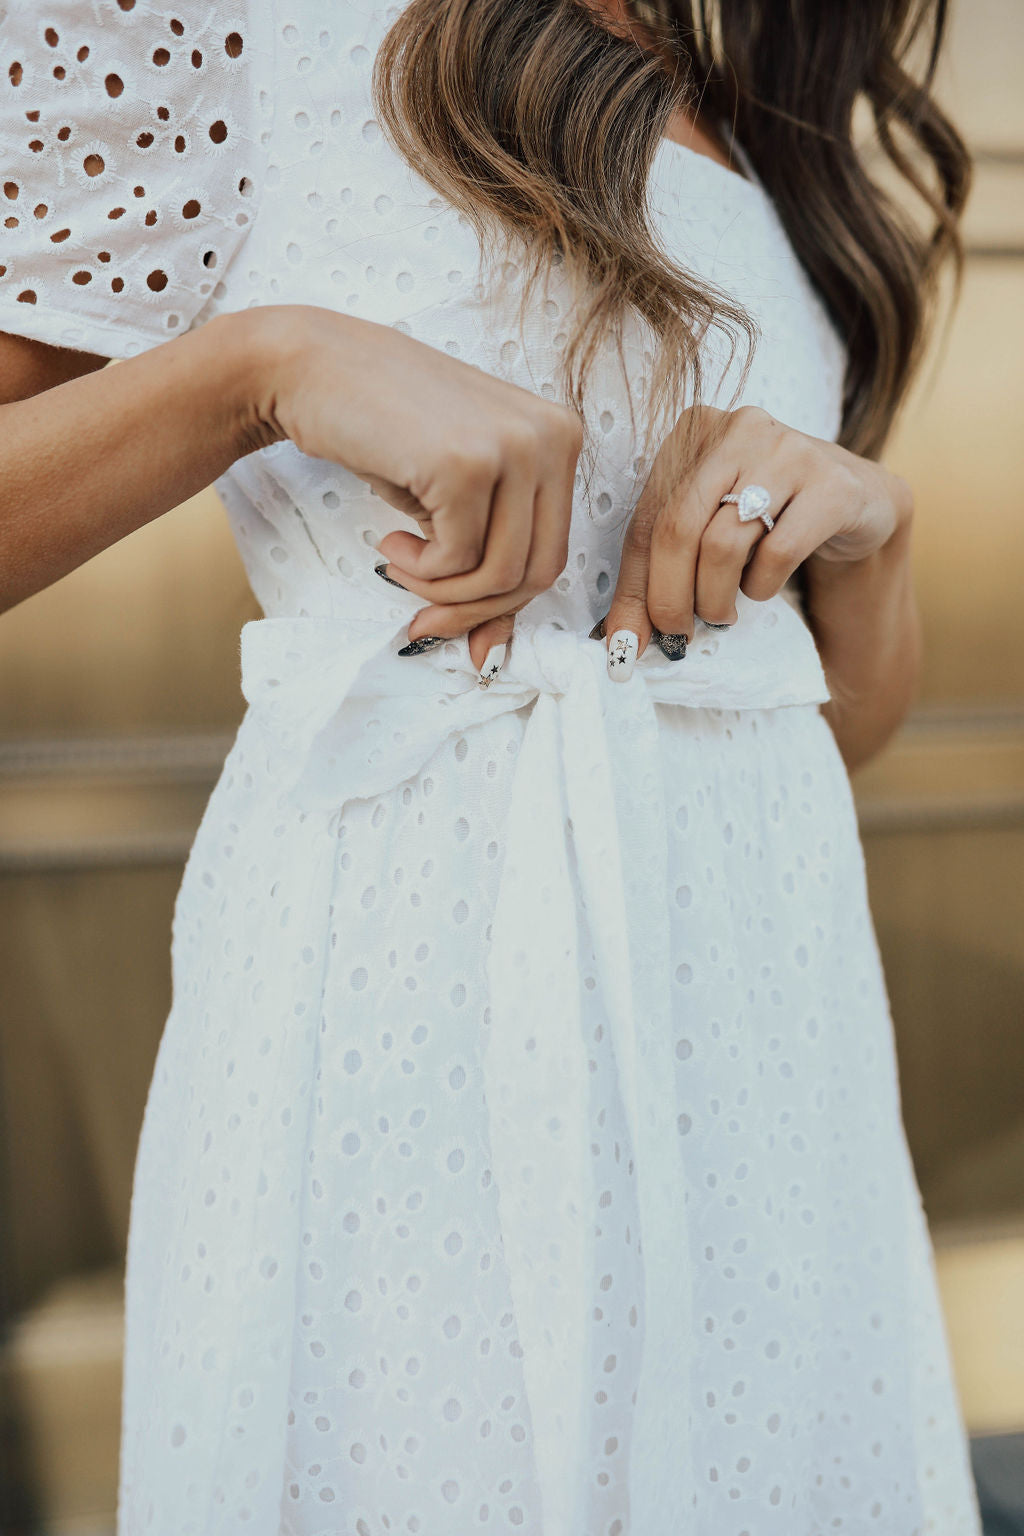 THE WITHERSPOON EYELET DRESS BY PINK DESERT